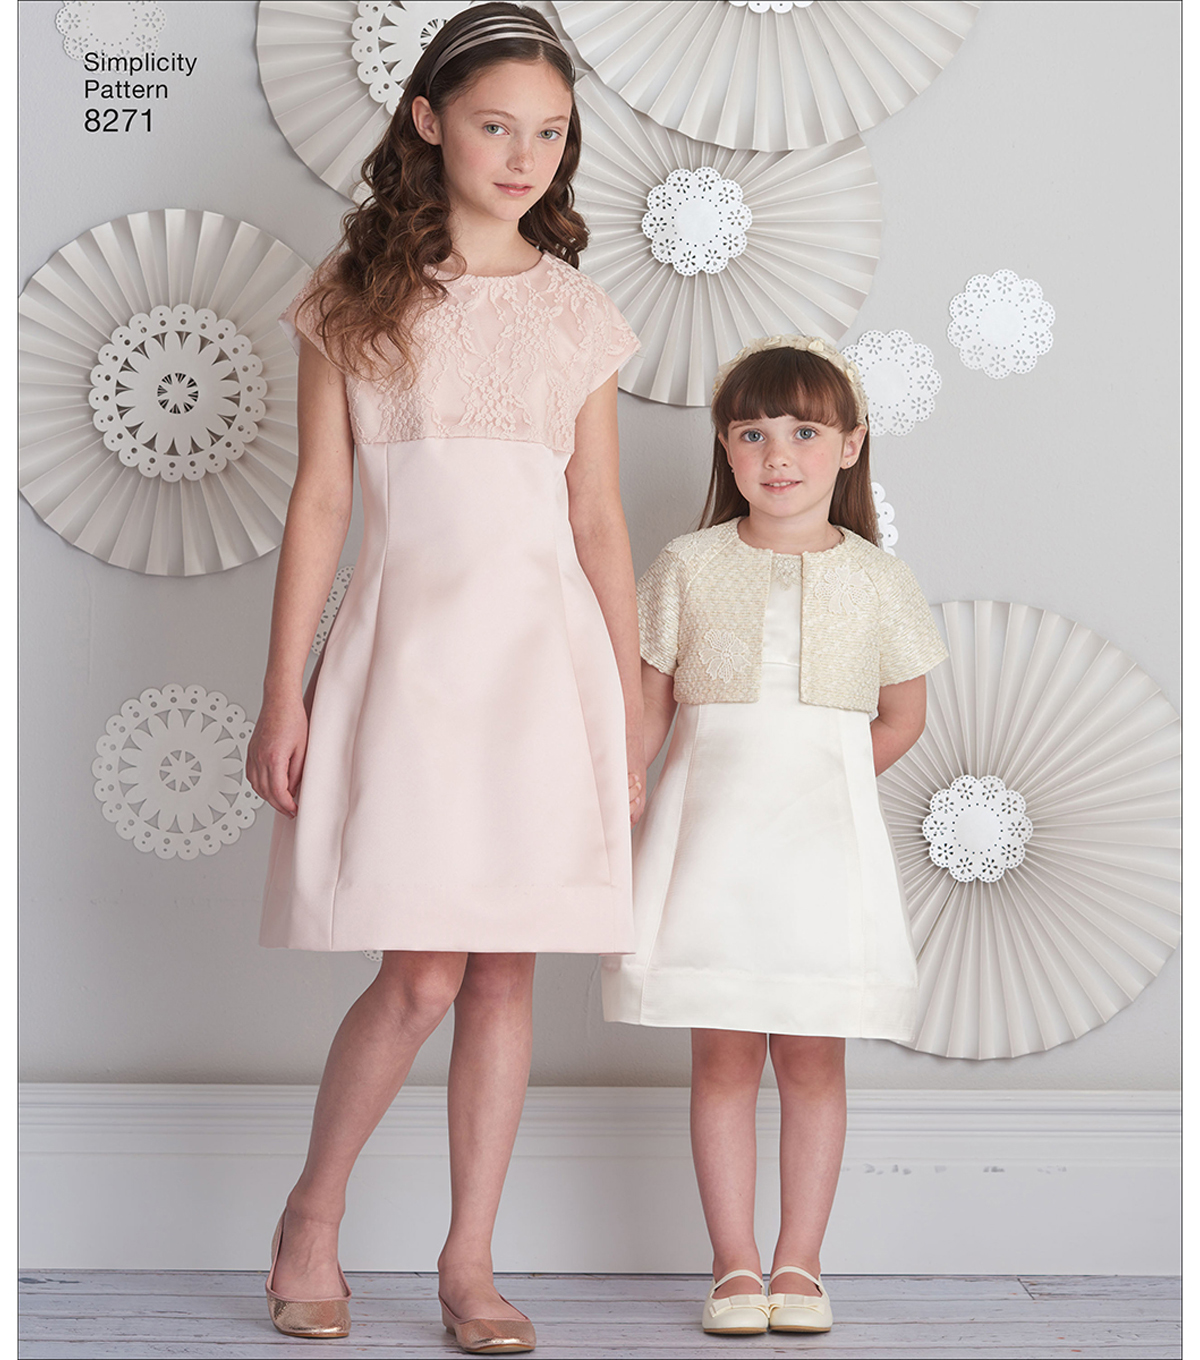 Simplicity Pattern 8271 Children\u0027s/Girls\u0027 Dress & Jacket-Size HH (3-6)